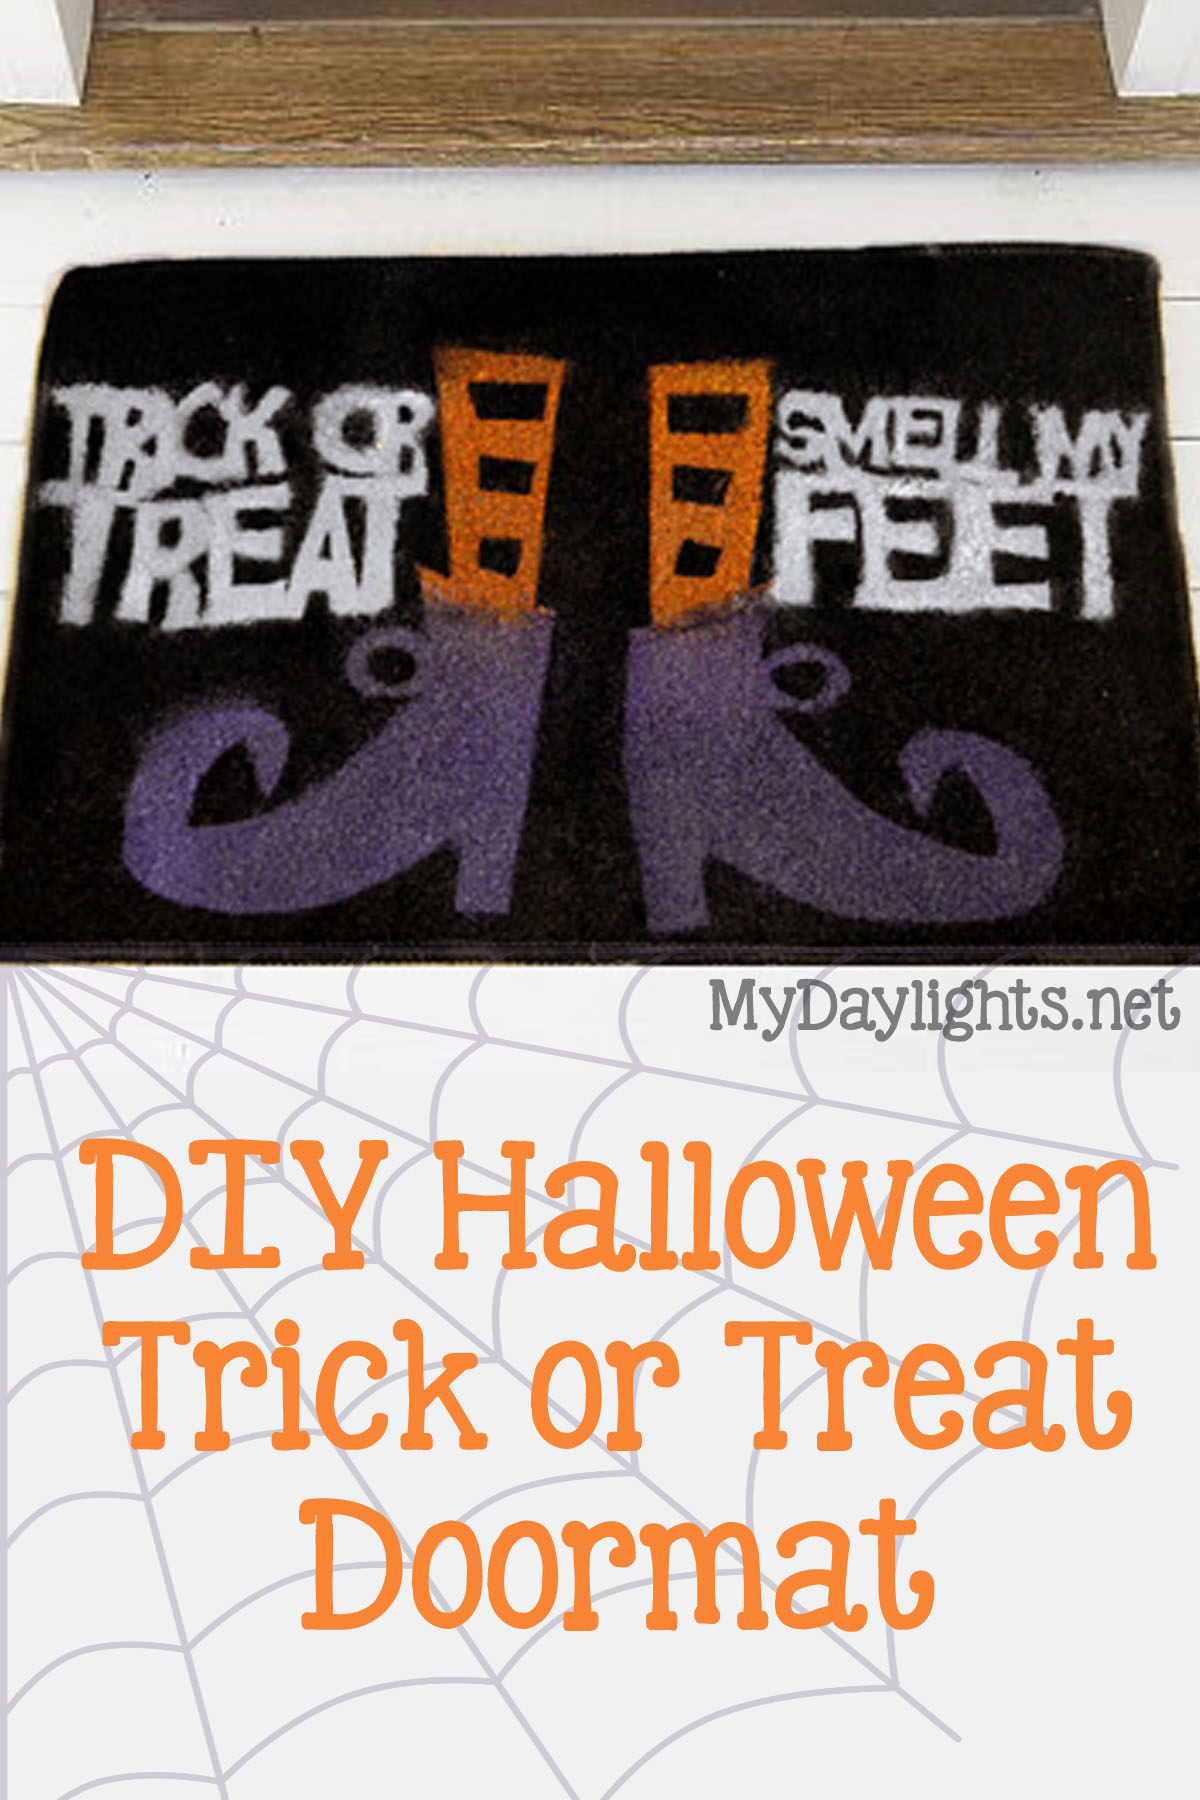 diy halloween door mat - your everyday family